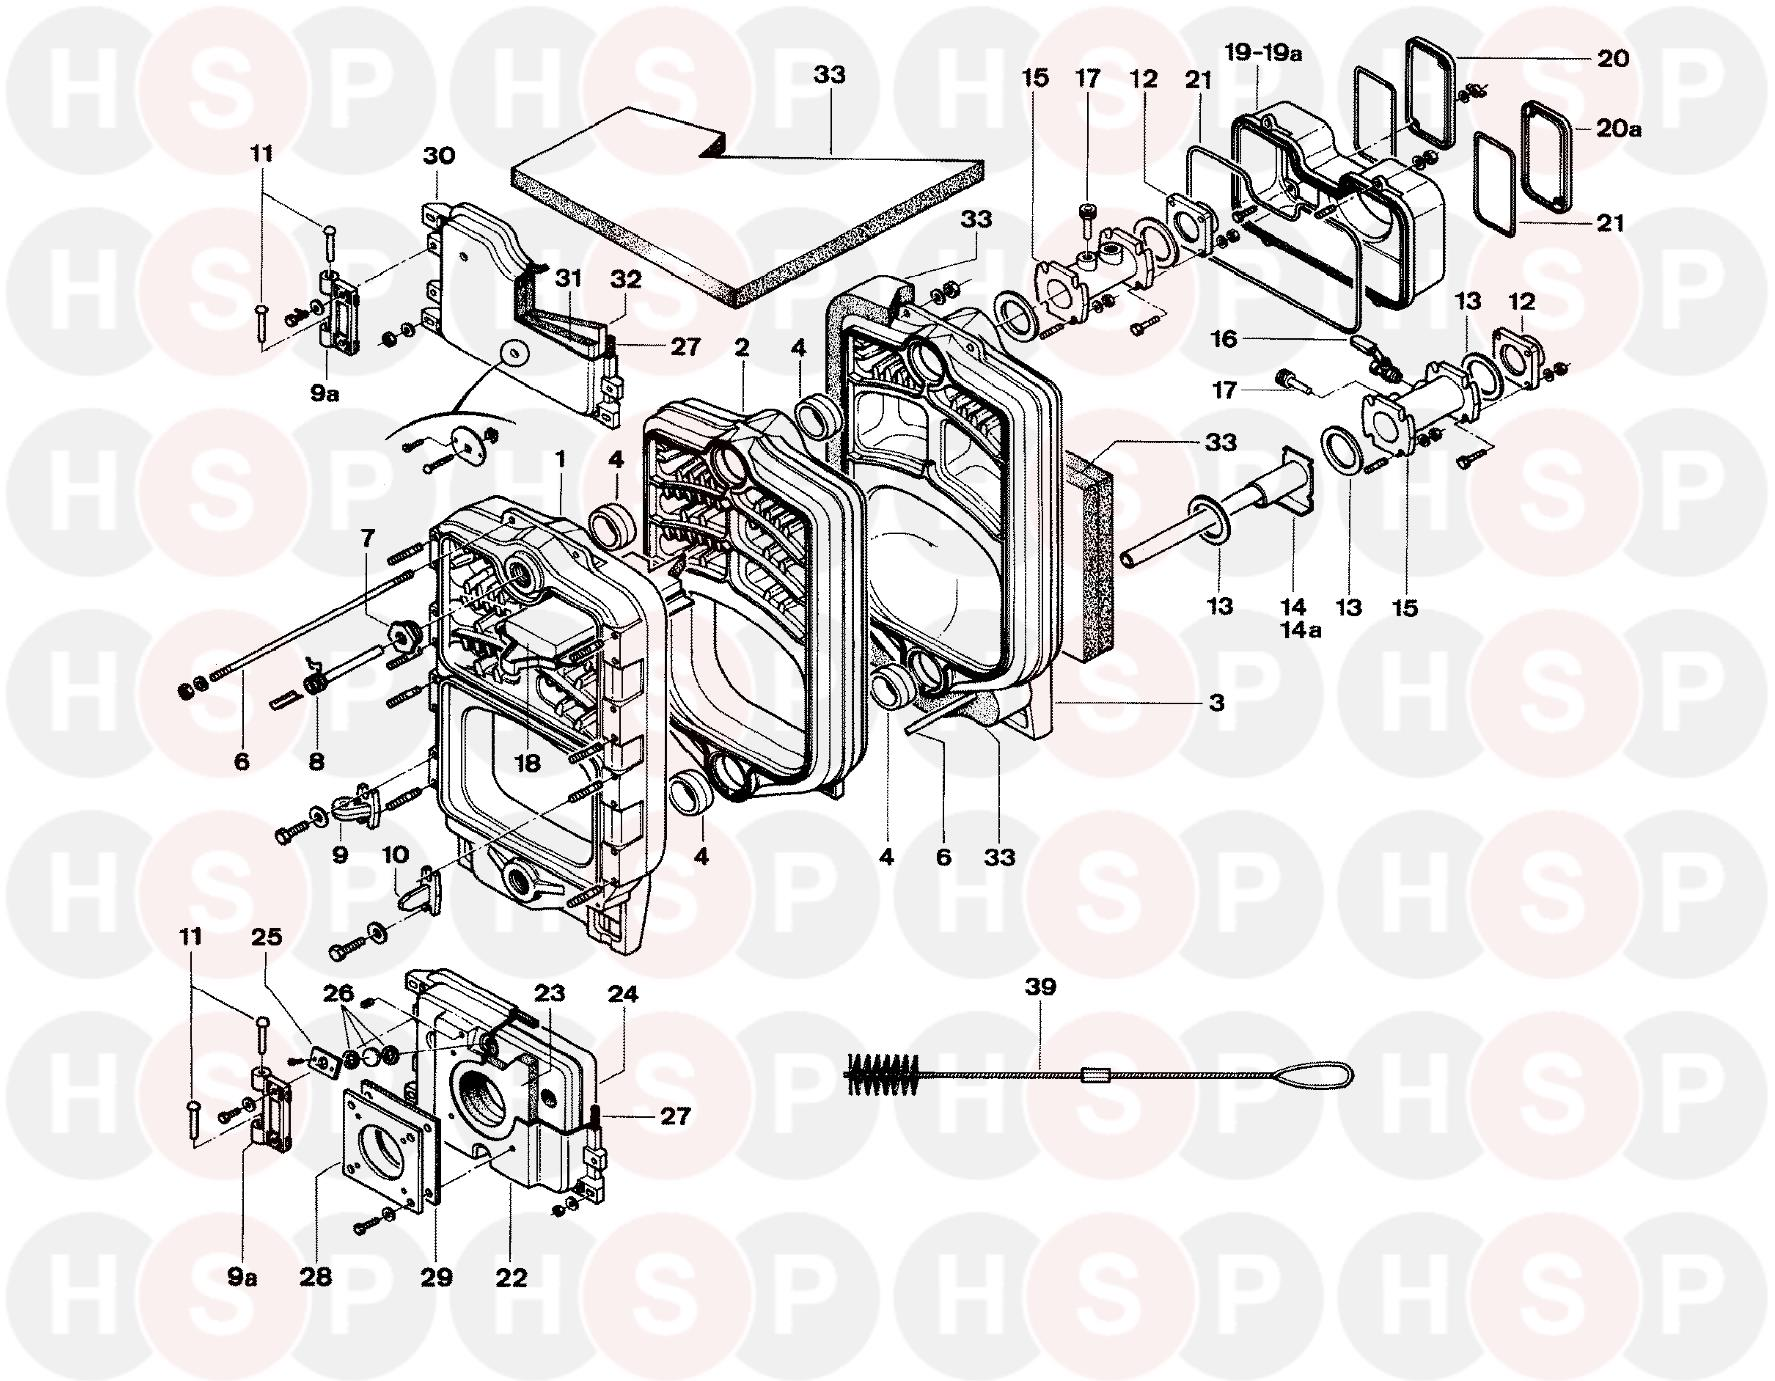 Potterton NXR3 4- 9 SectionS (BOILER EXPLODED VIEW